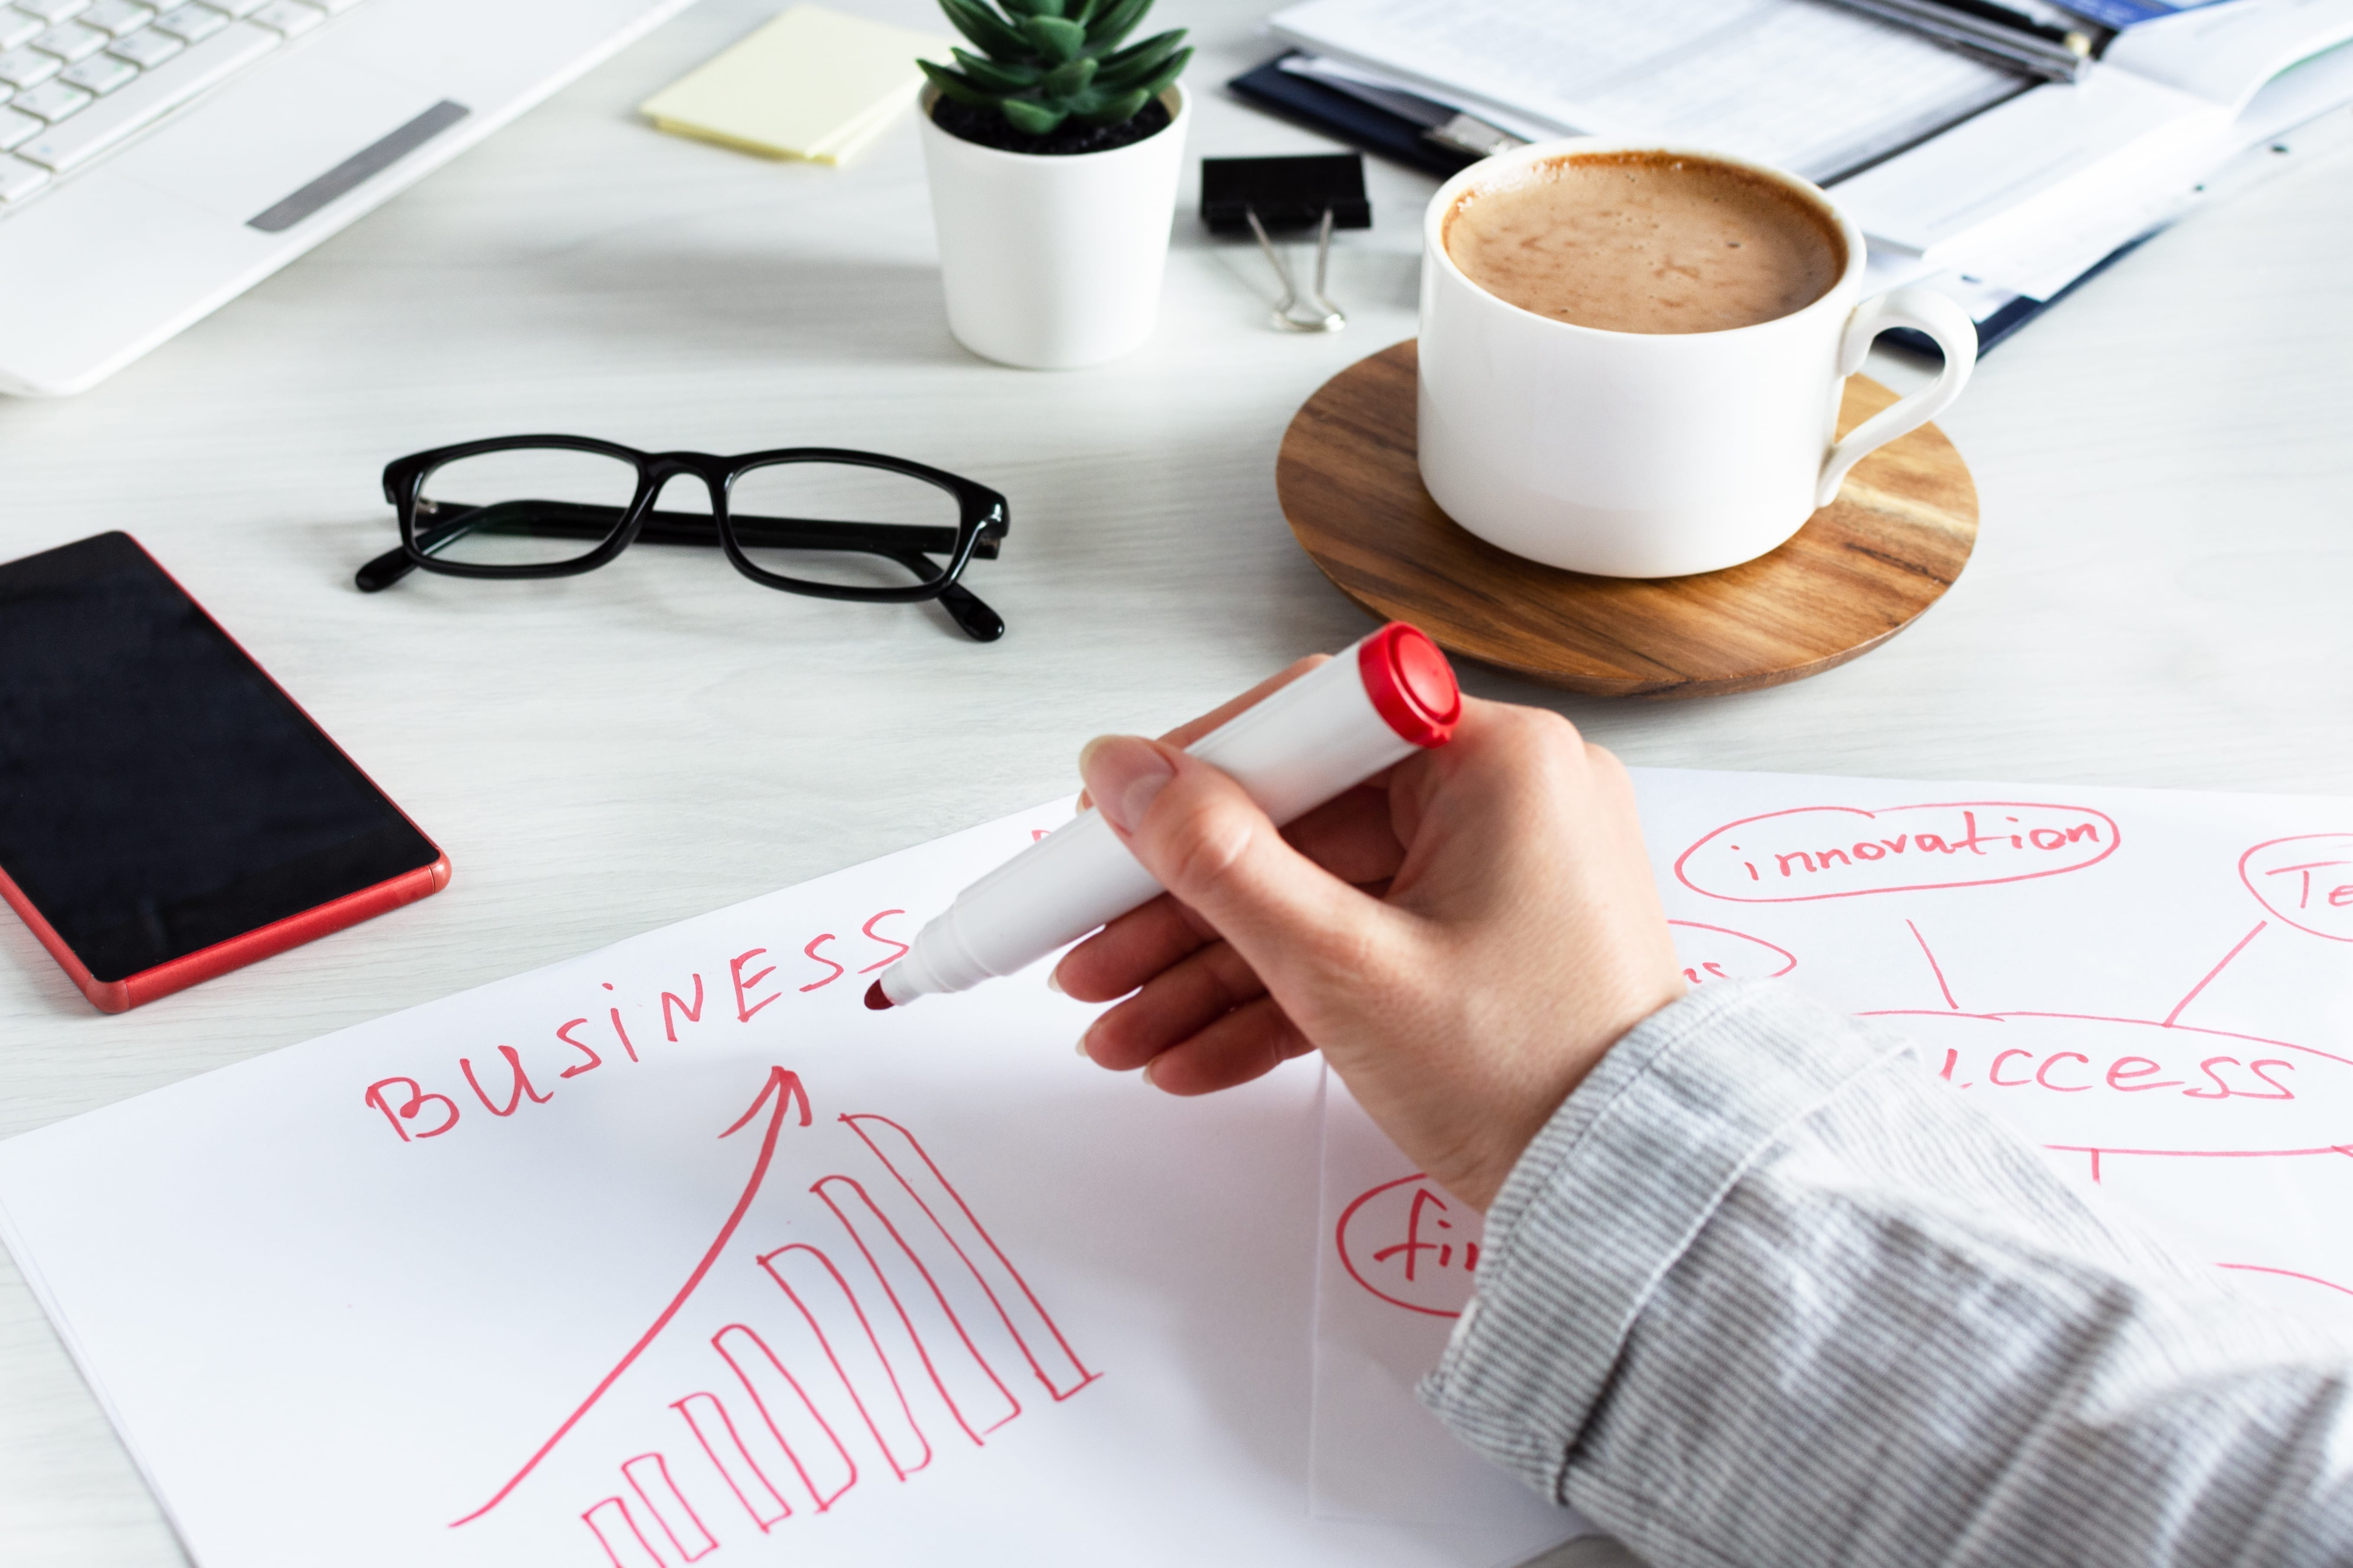 6 Business Plan Samples and Templates to Assist With Writing Yours